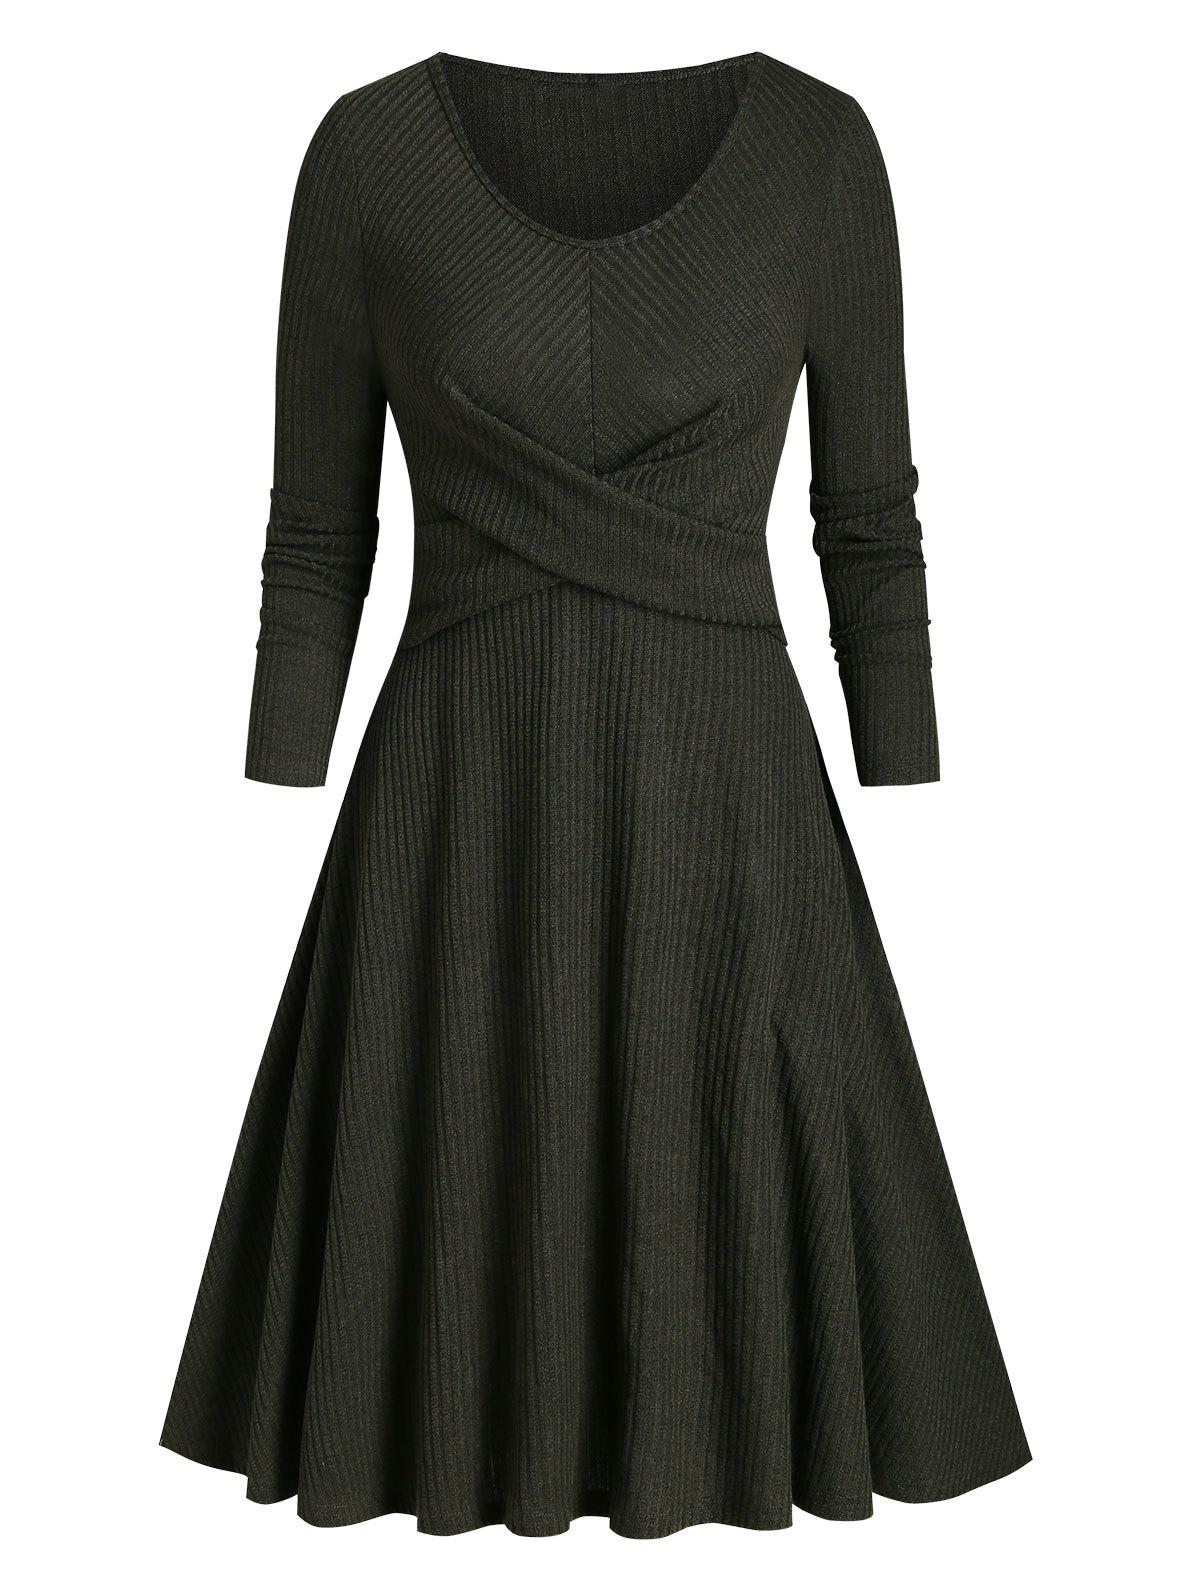 Criss Cross Ribbed Knitted A Line Dress - DARK FOREST GREEN 2XL